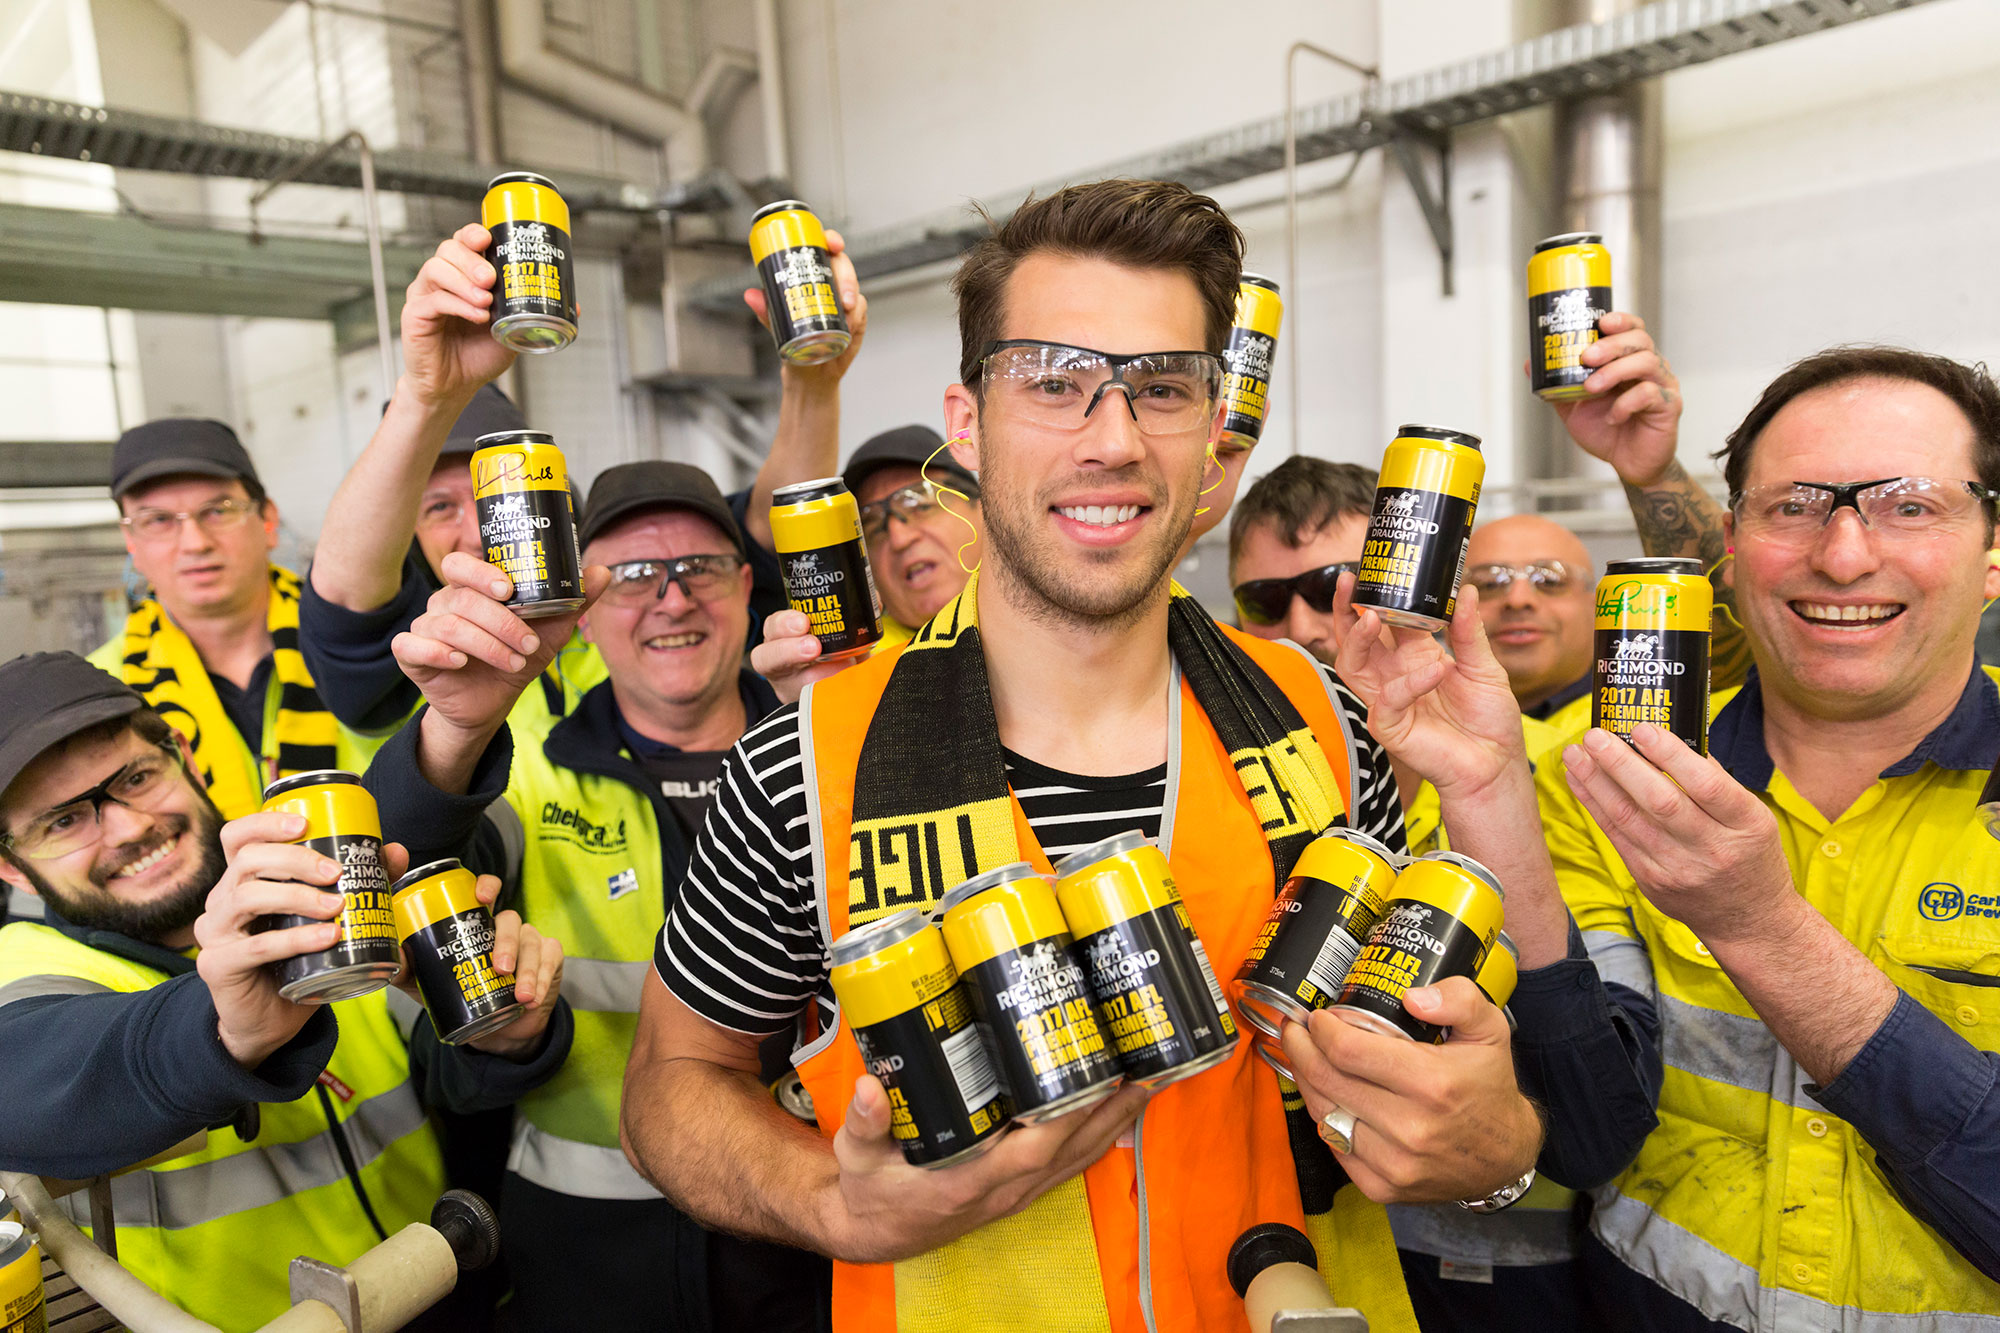 CUB releases limited edition Richmond premiers beer cans